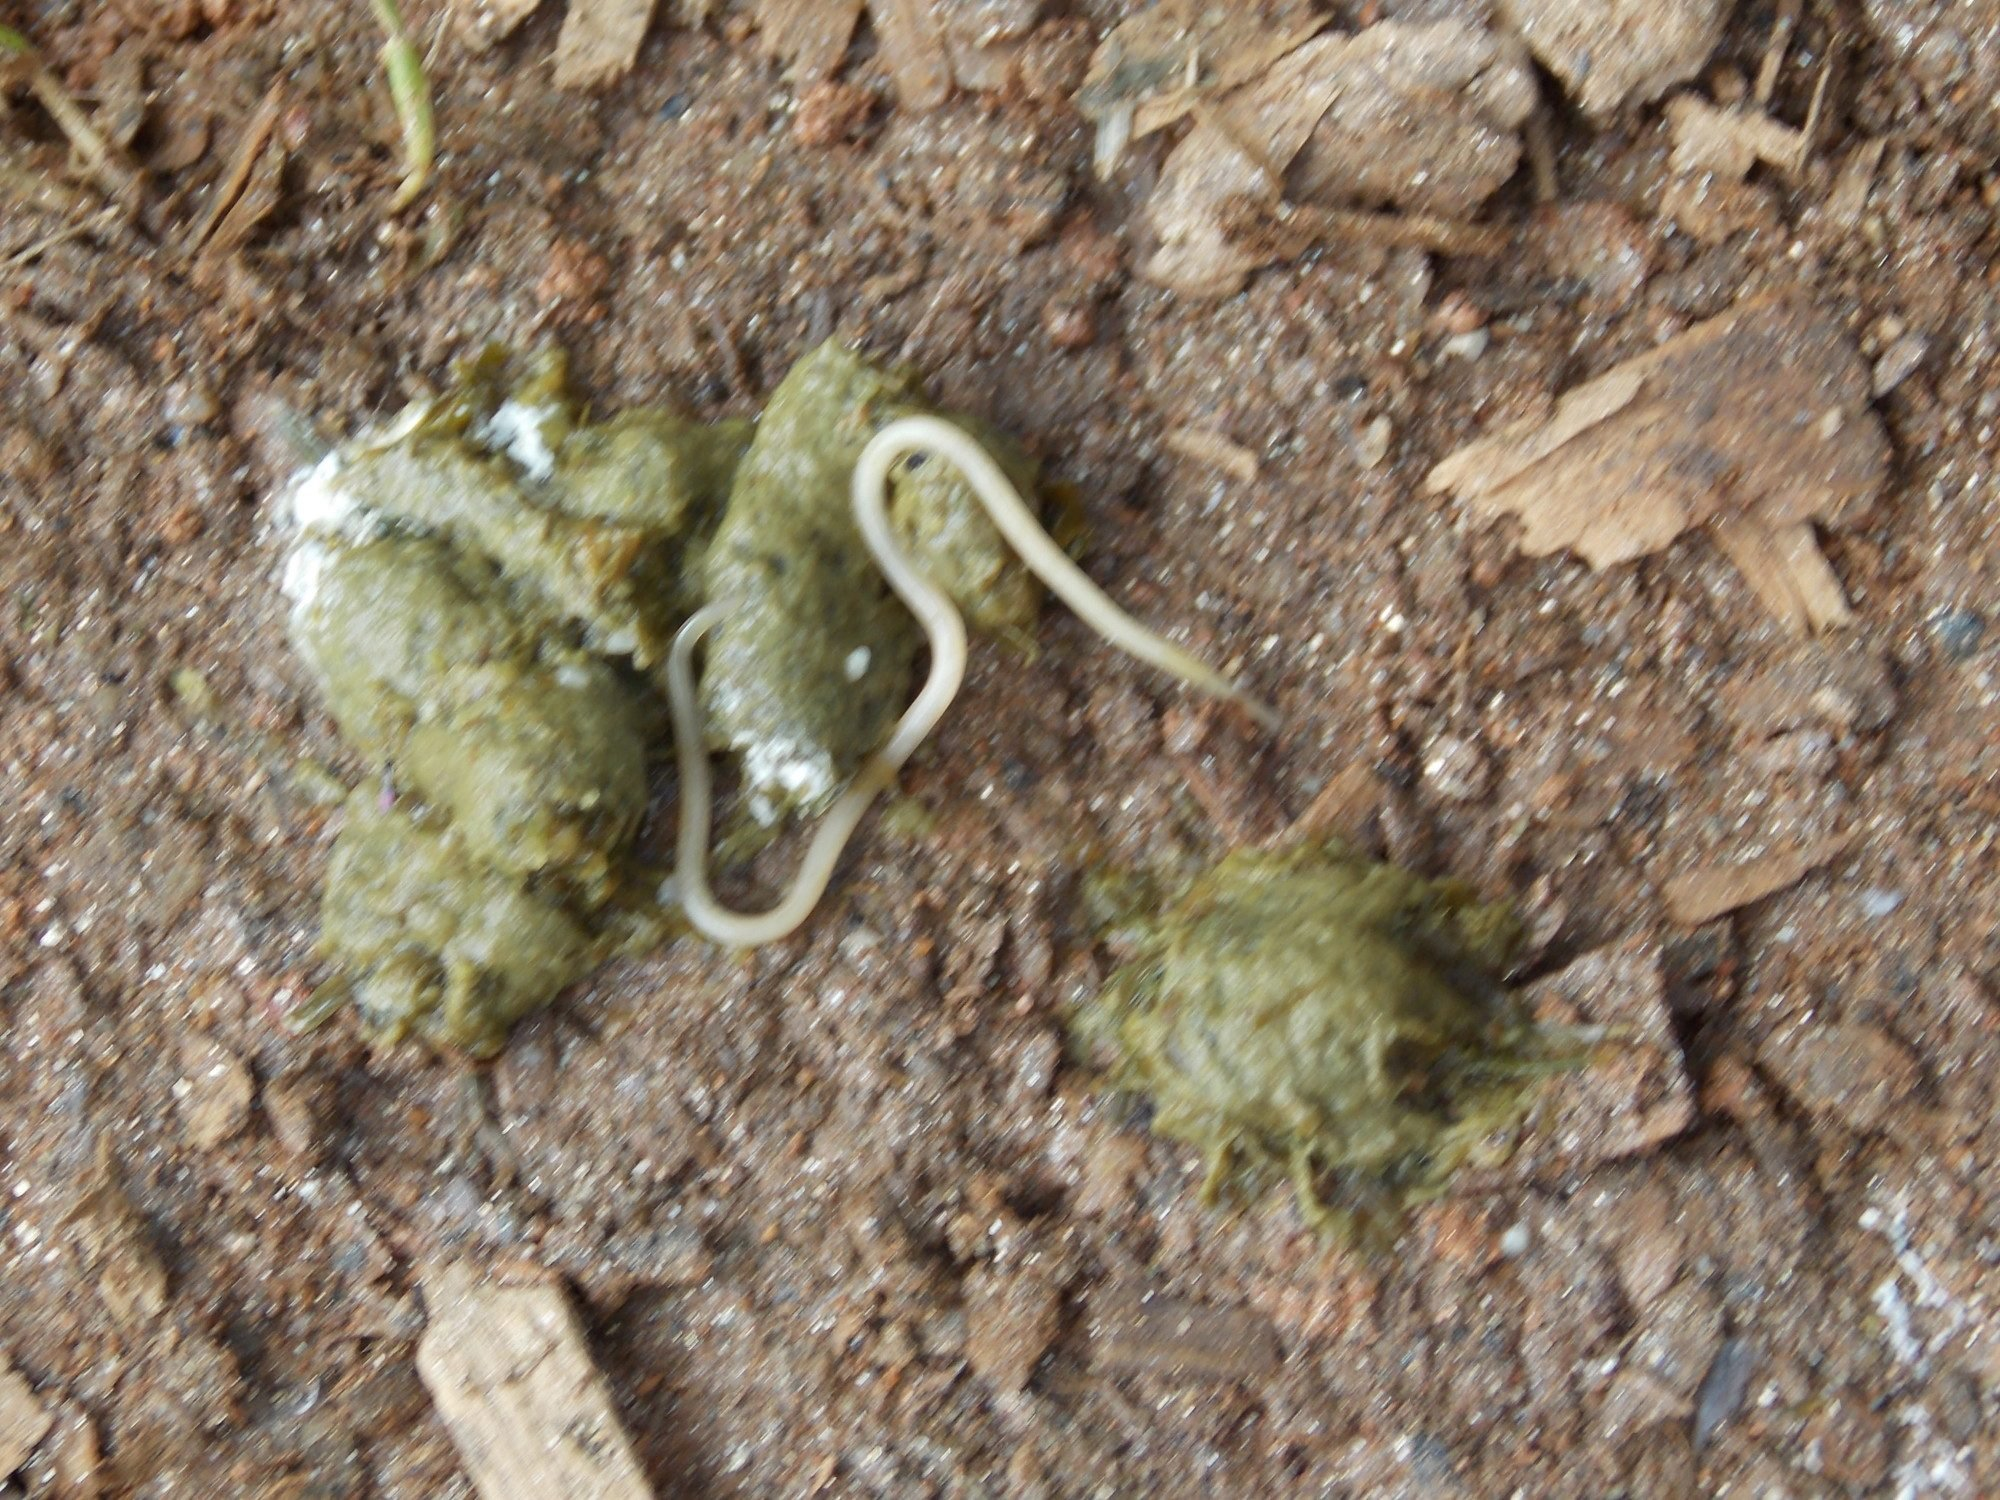 Dog Poop With Worms